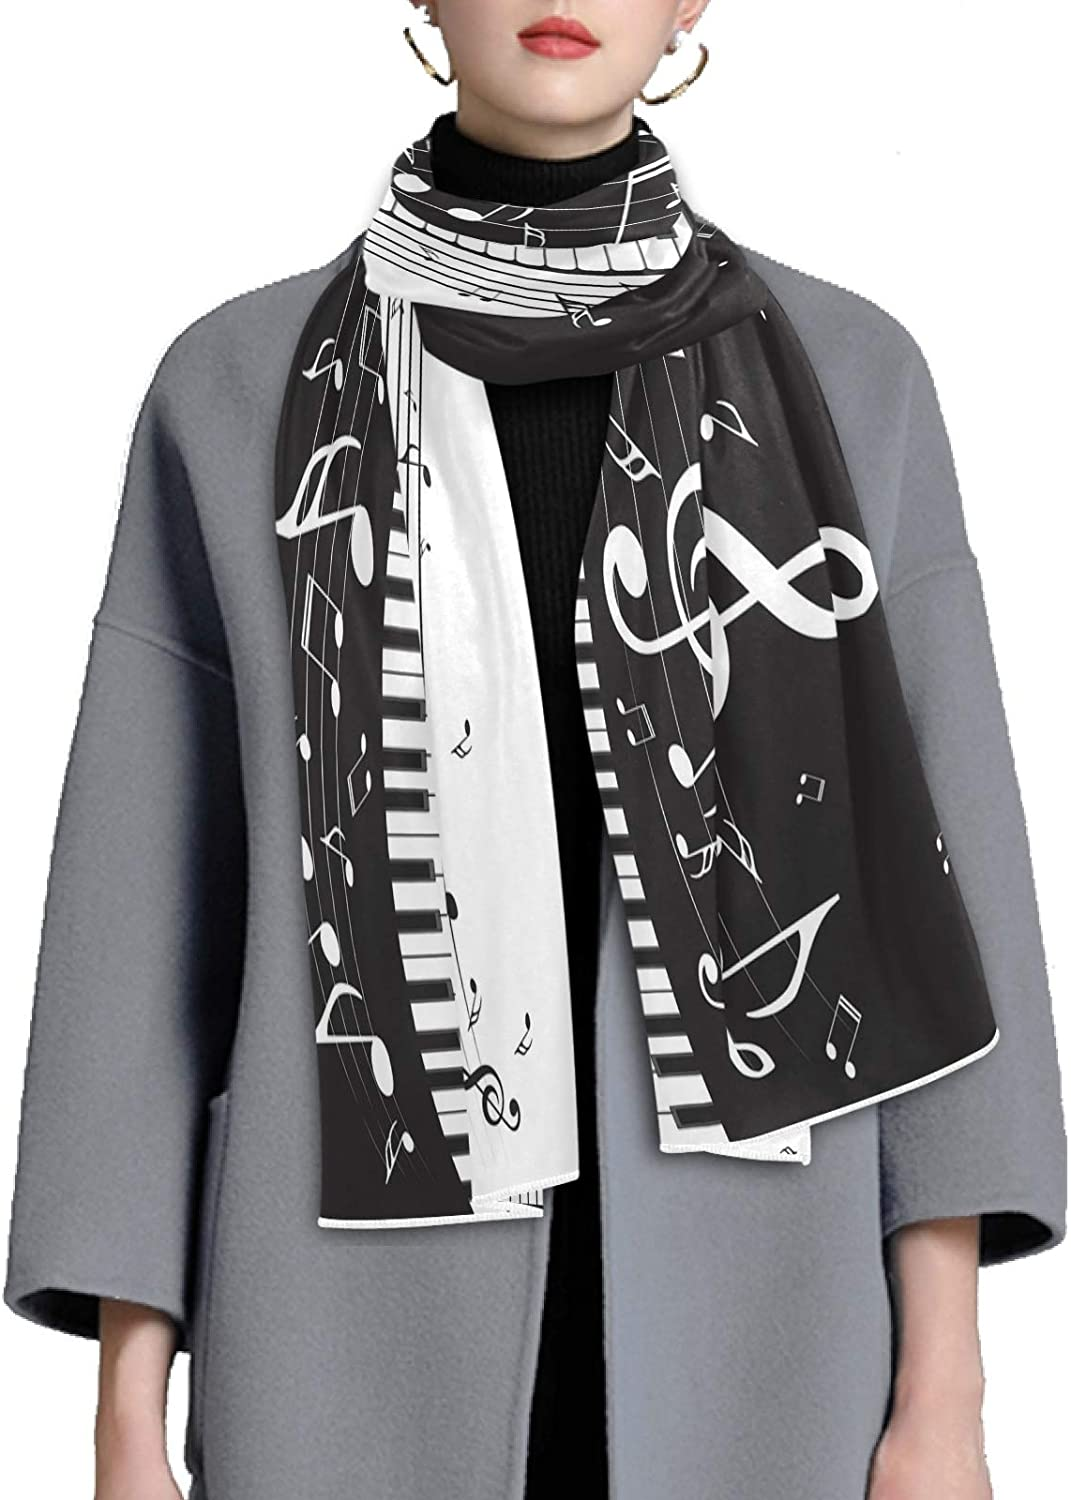 Scarf for Women and Men Piano Keys Musical Notes Blanket Shawl Scarves Wraps Thick Soft Winter Oversized Scarf Lightweight